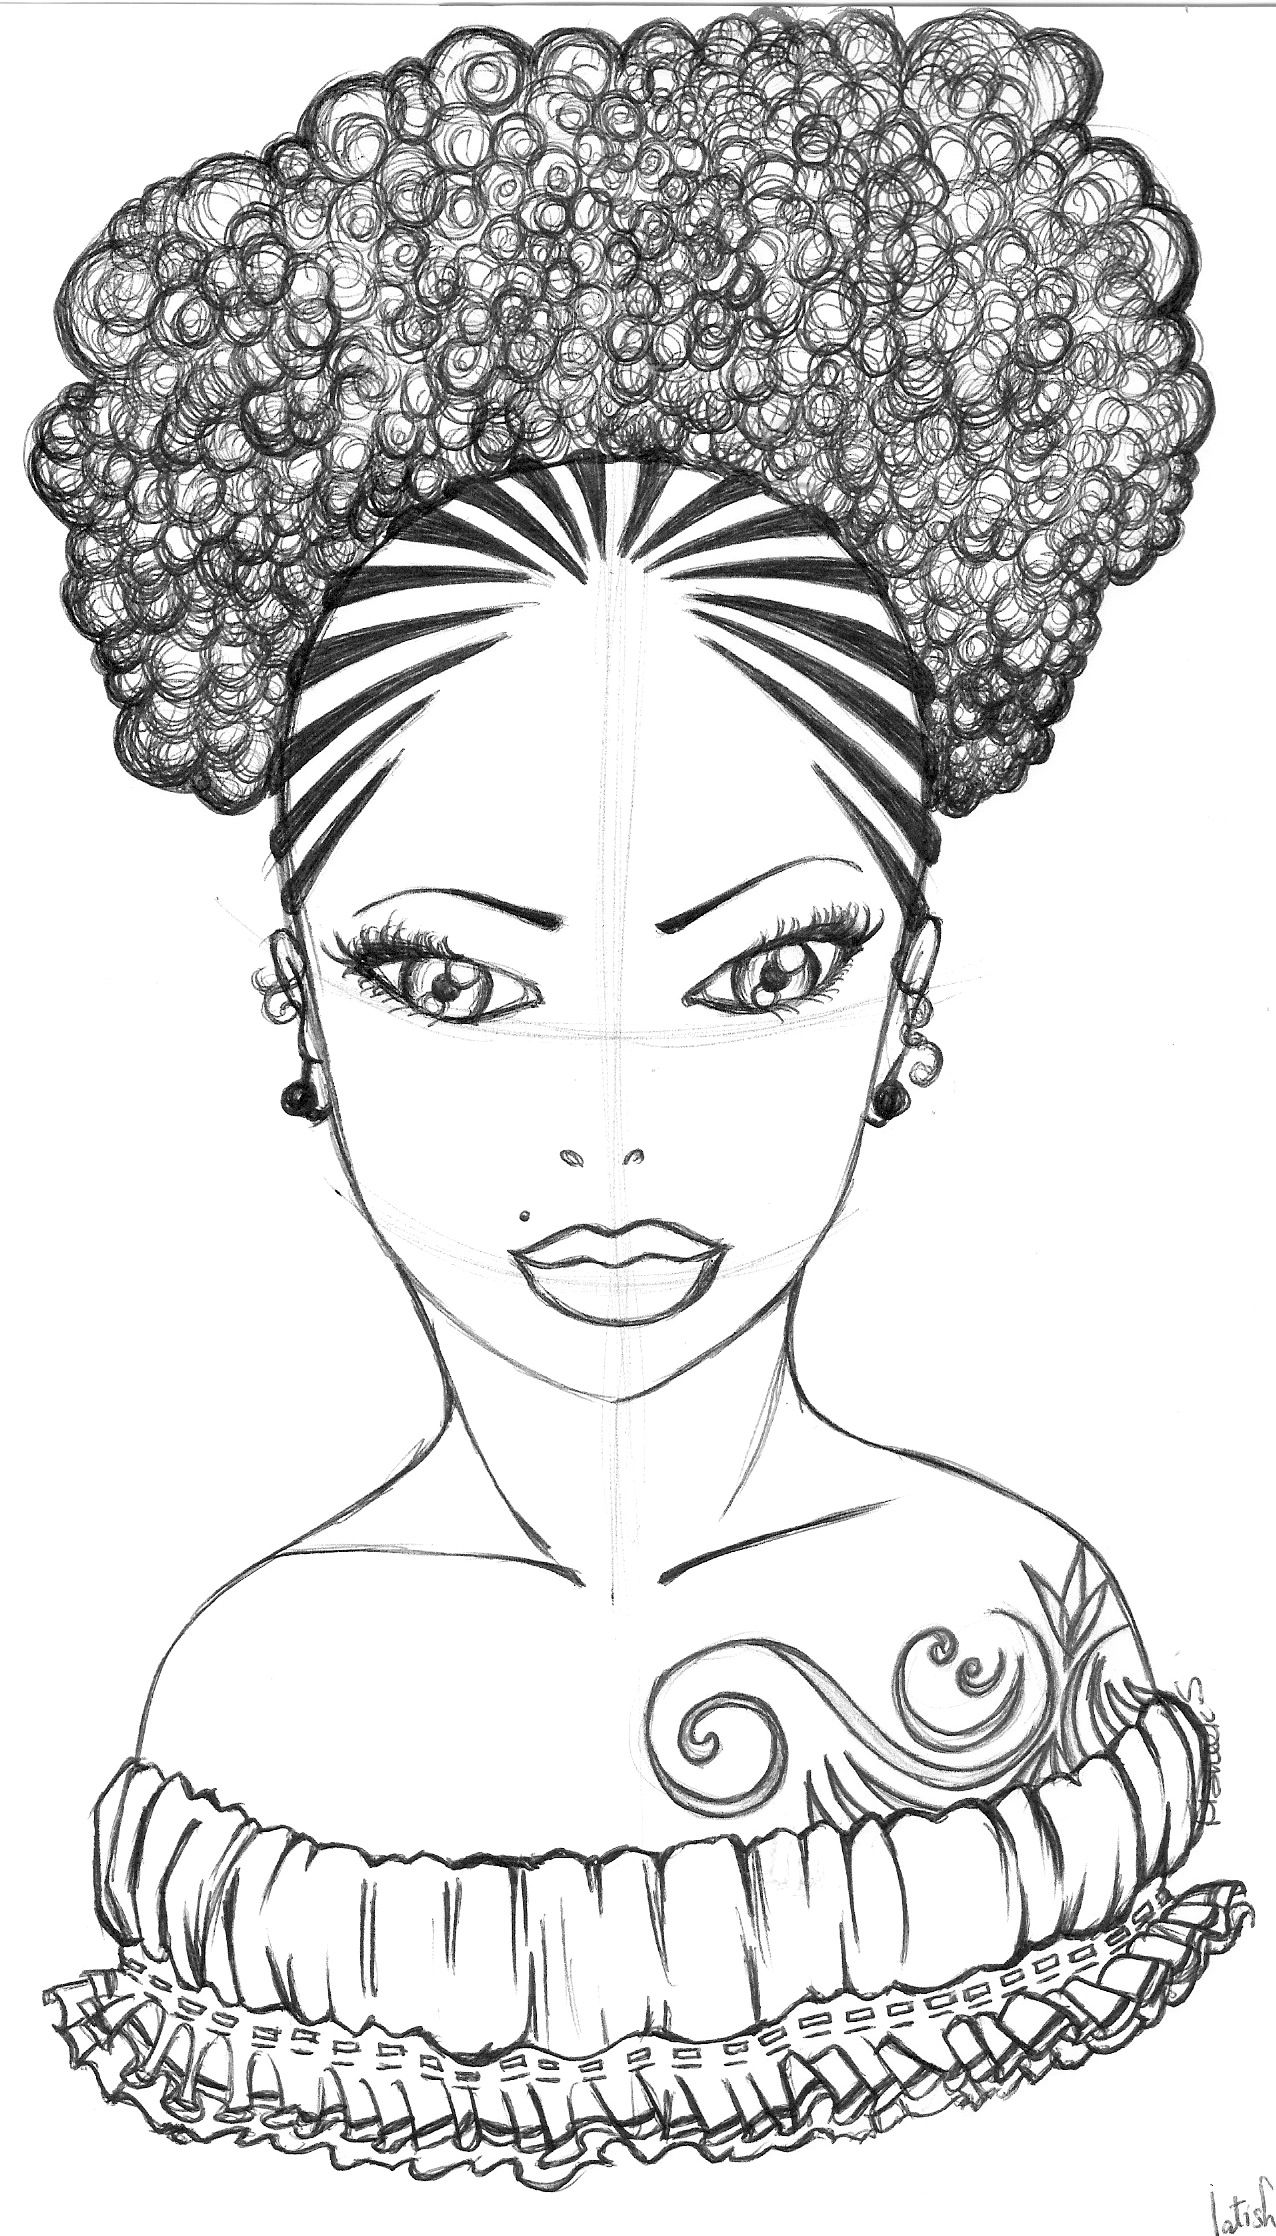 Gladys | African drawings, Coloring pages, Black women art